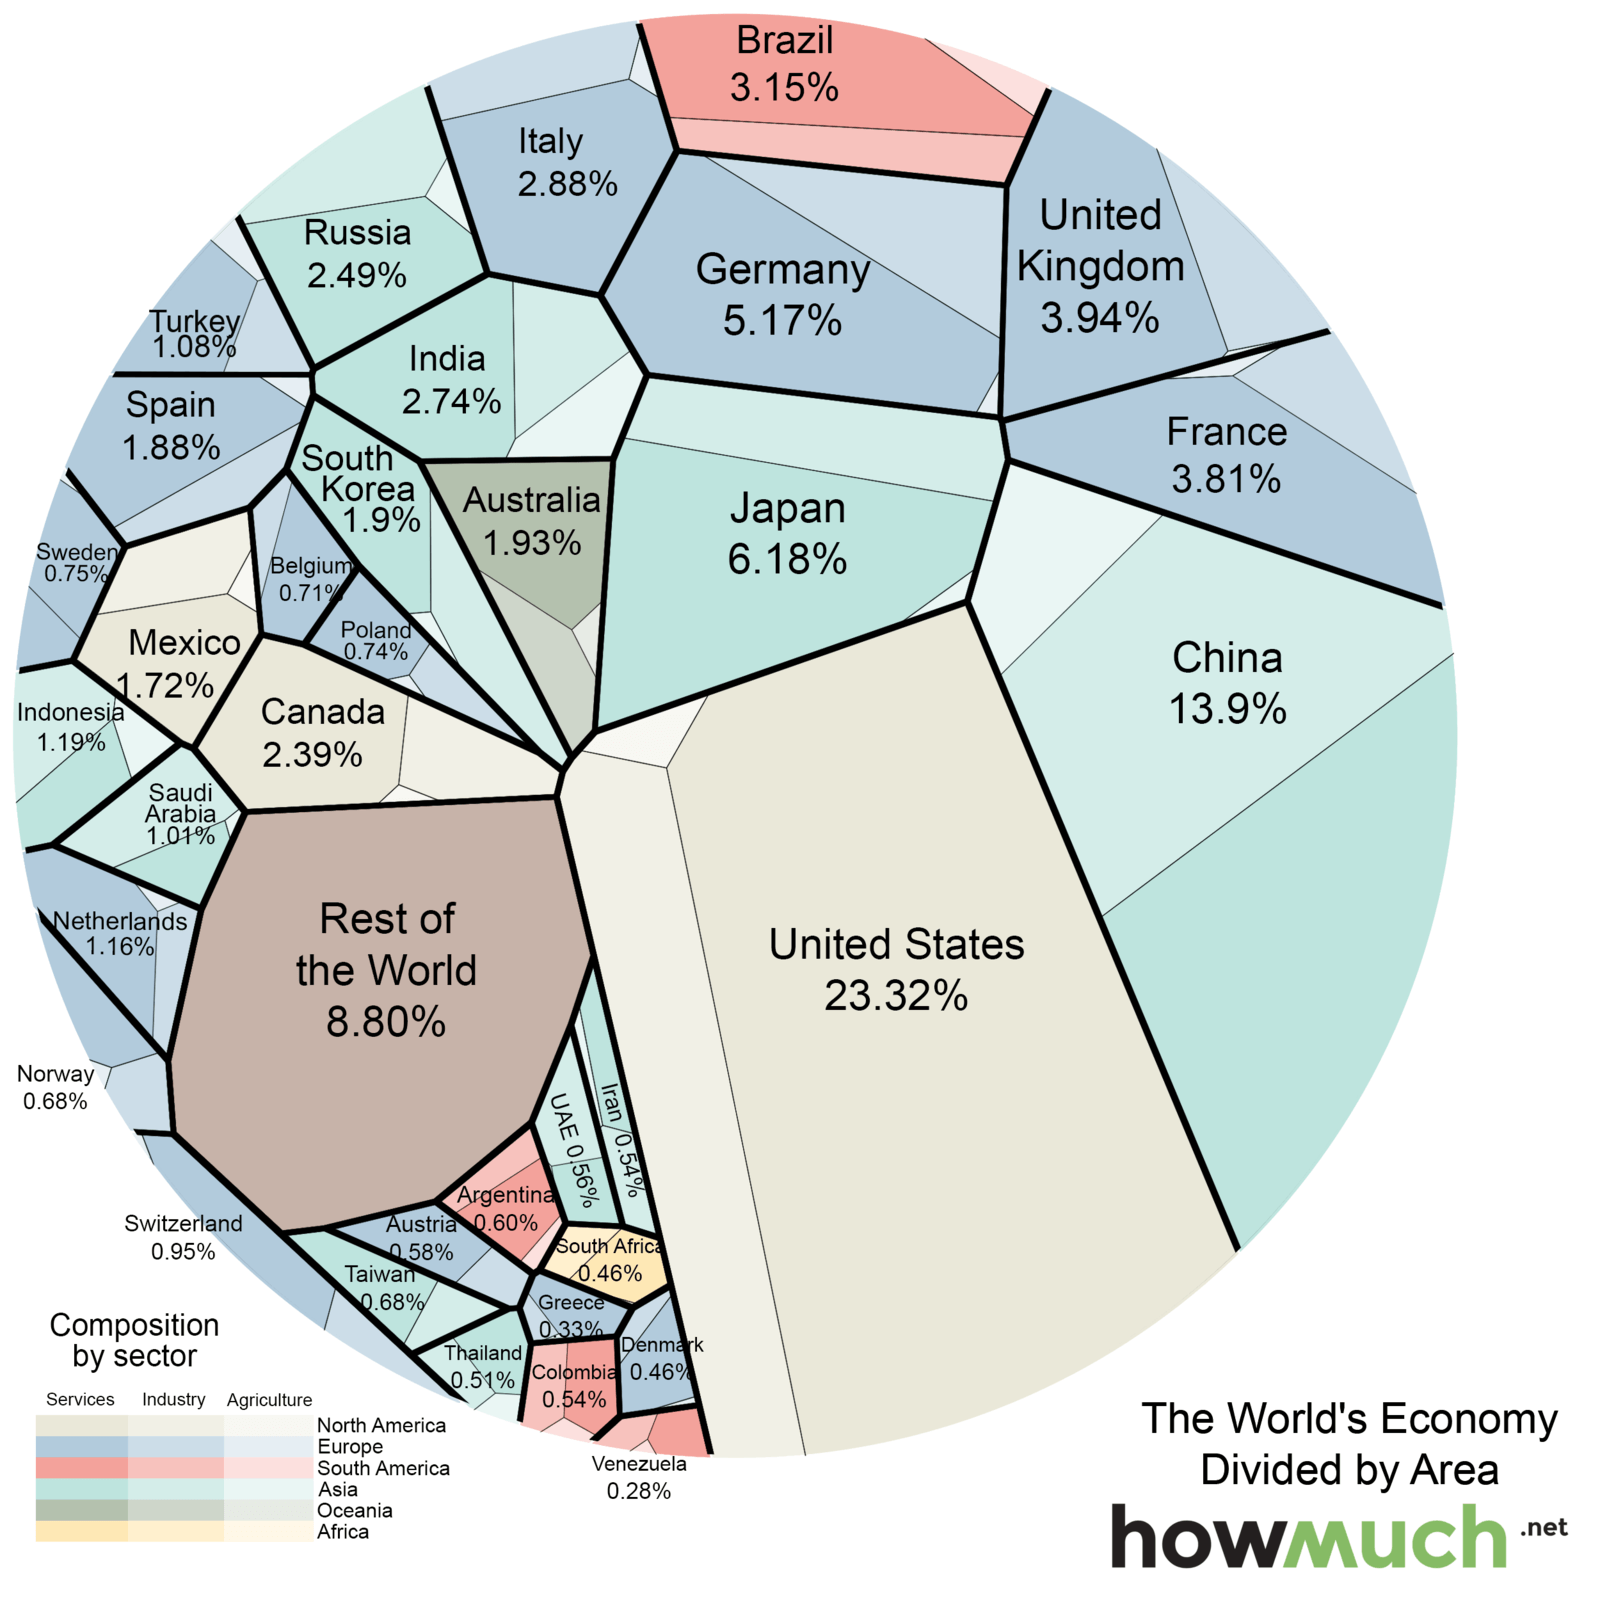 Chart Explains the Entire World Economy - mpc journal - hakim khatib